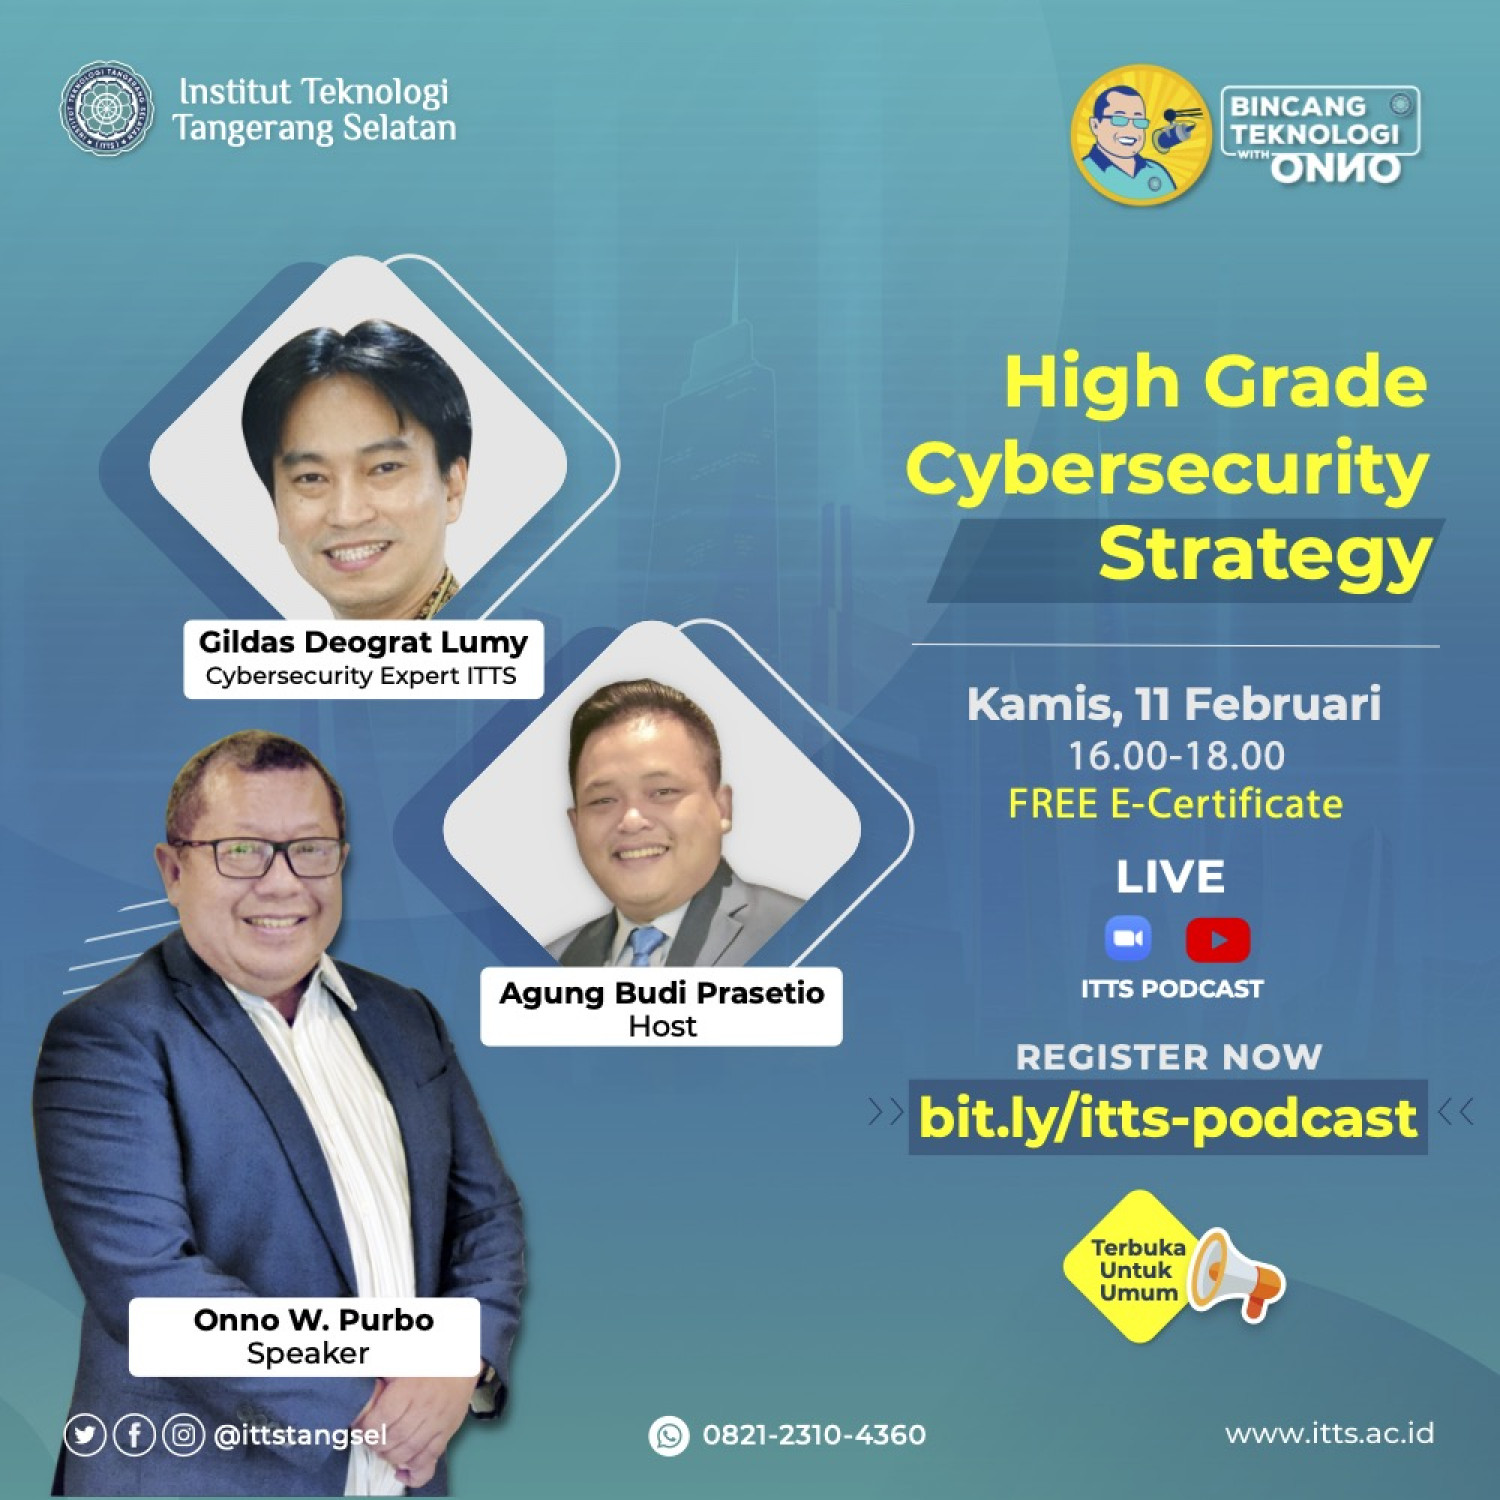 ITTSPODCAST EPISODE 2 - HIGH GRADE CYBER SECURITY STRATEGY